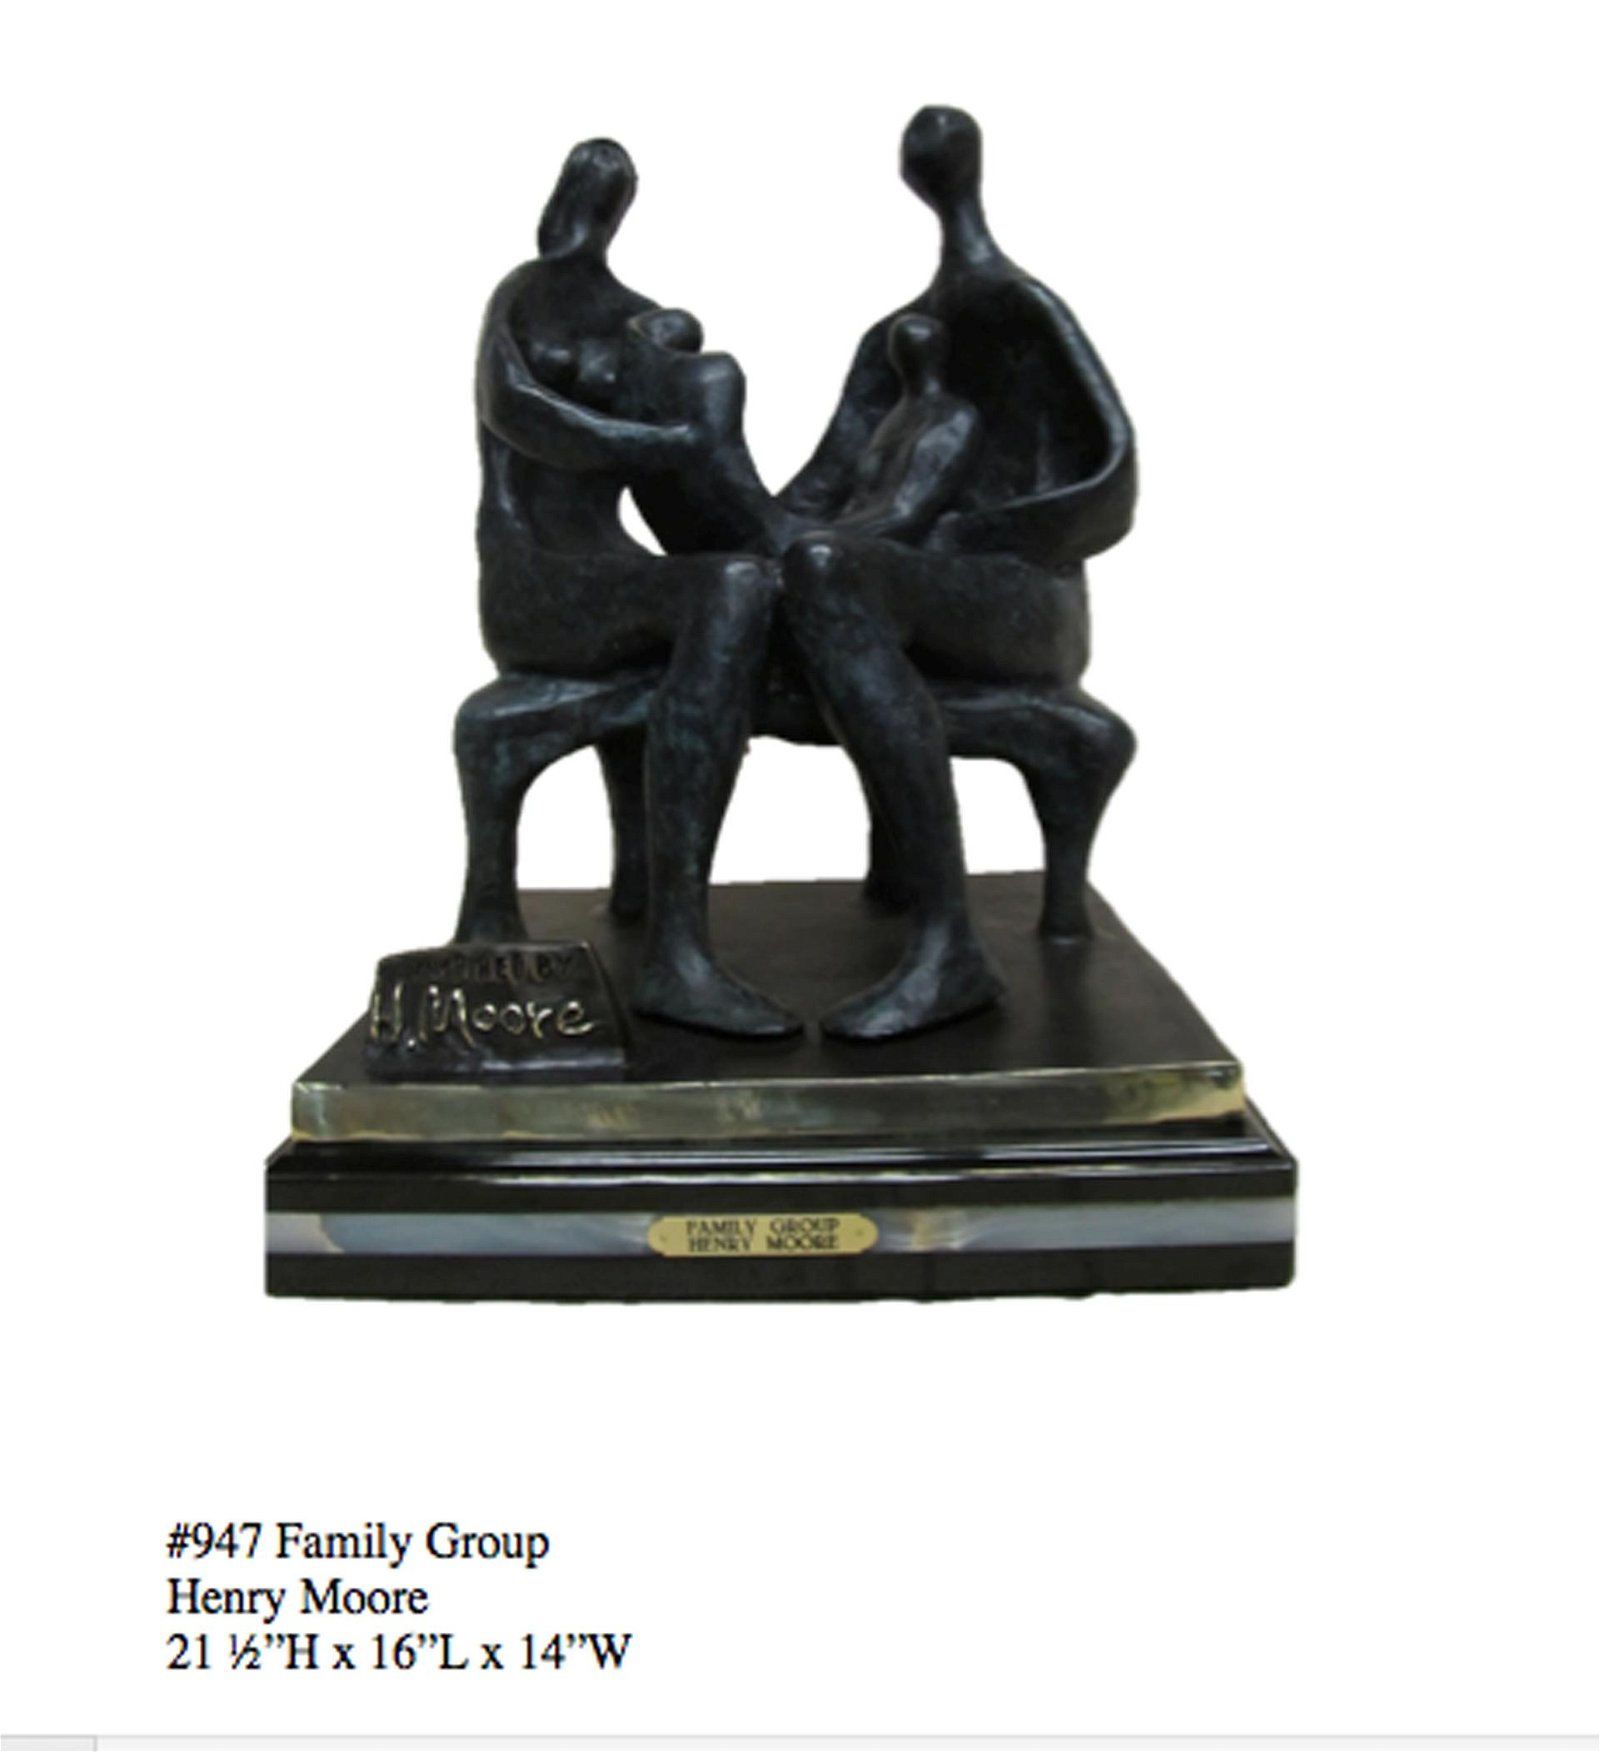 *Rare Limited Edition Numbered Bronze Henry Moore